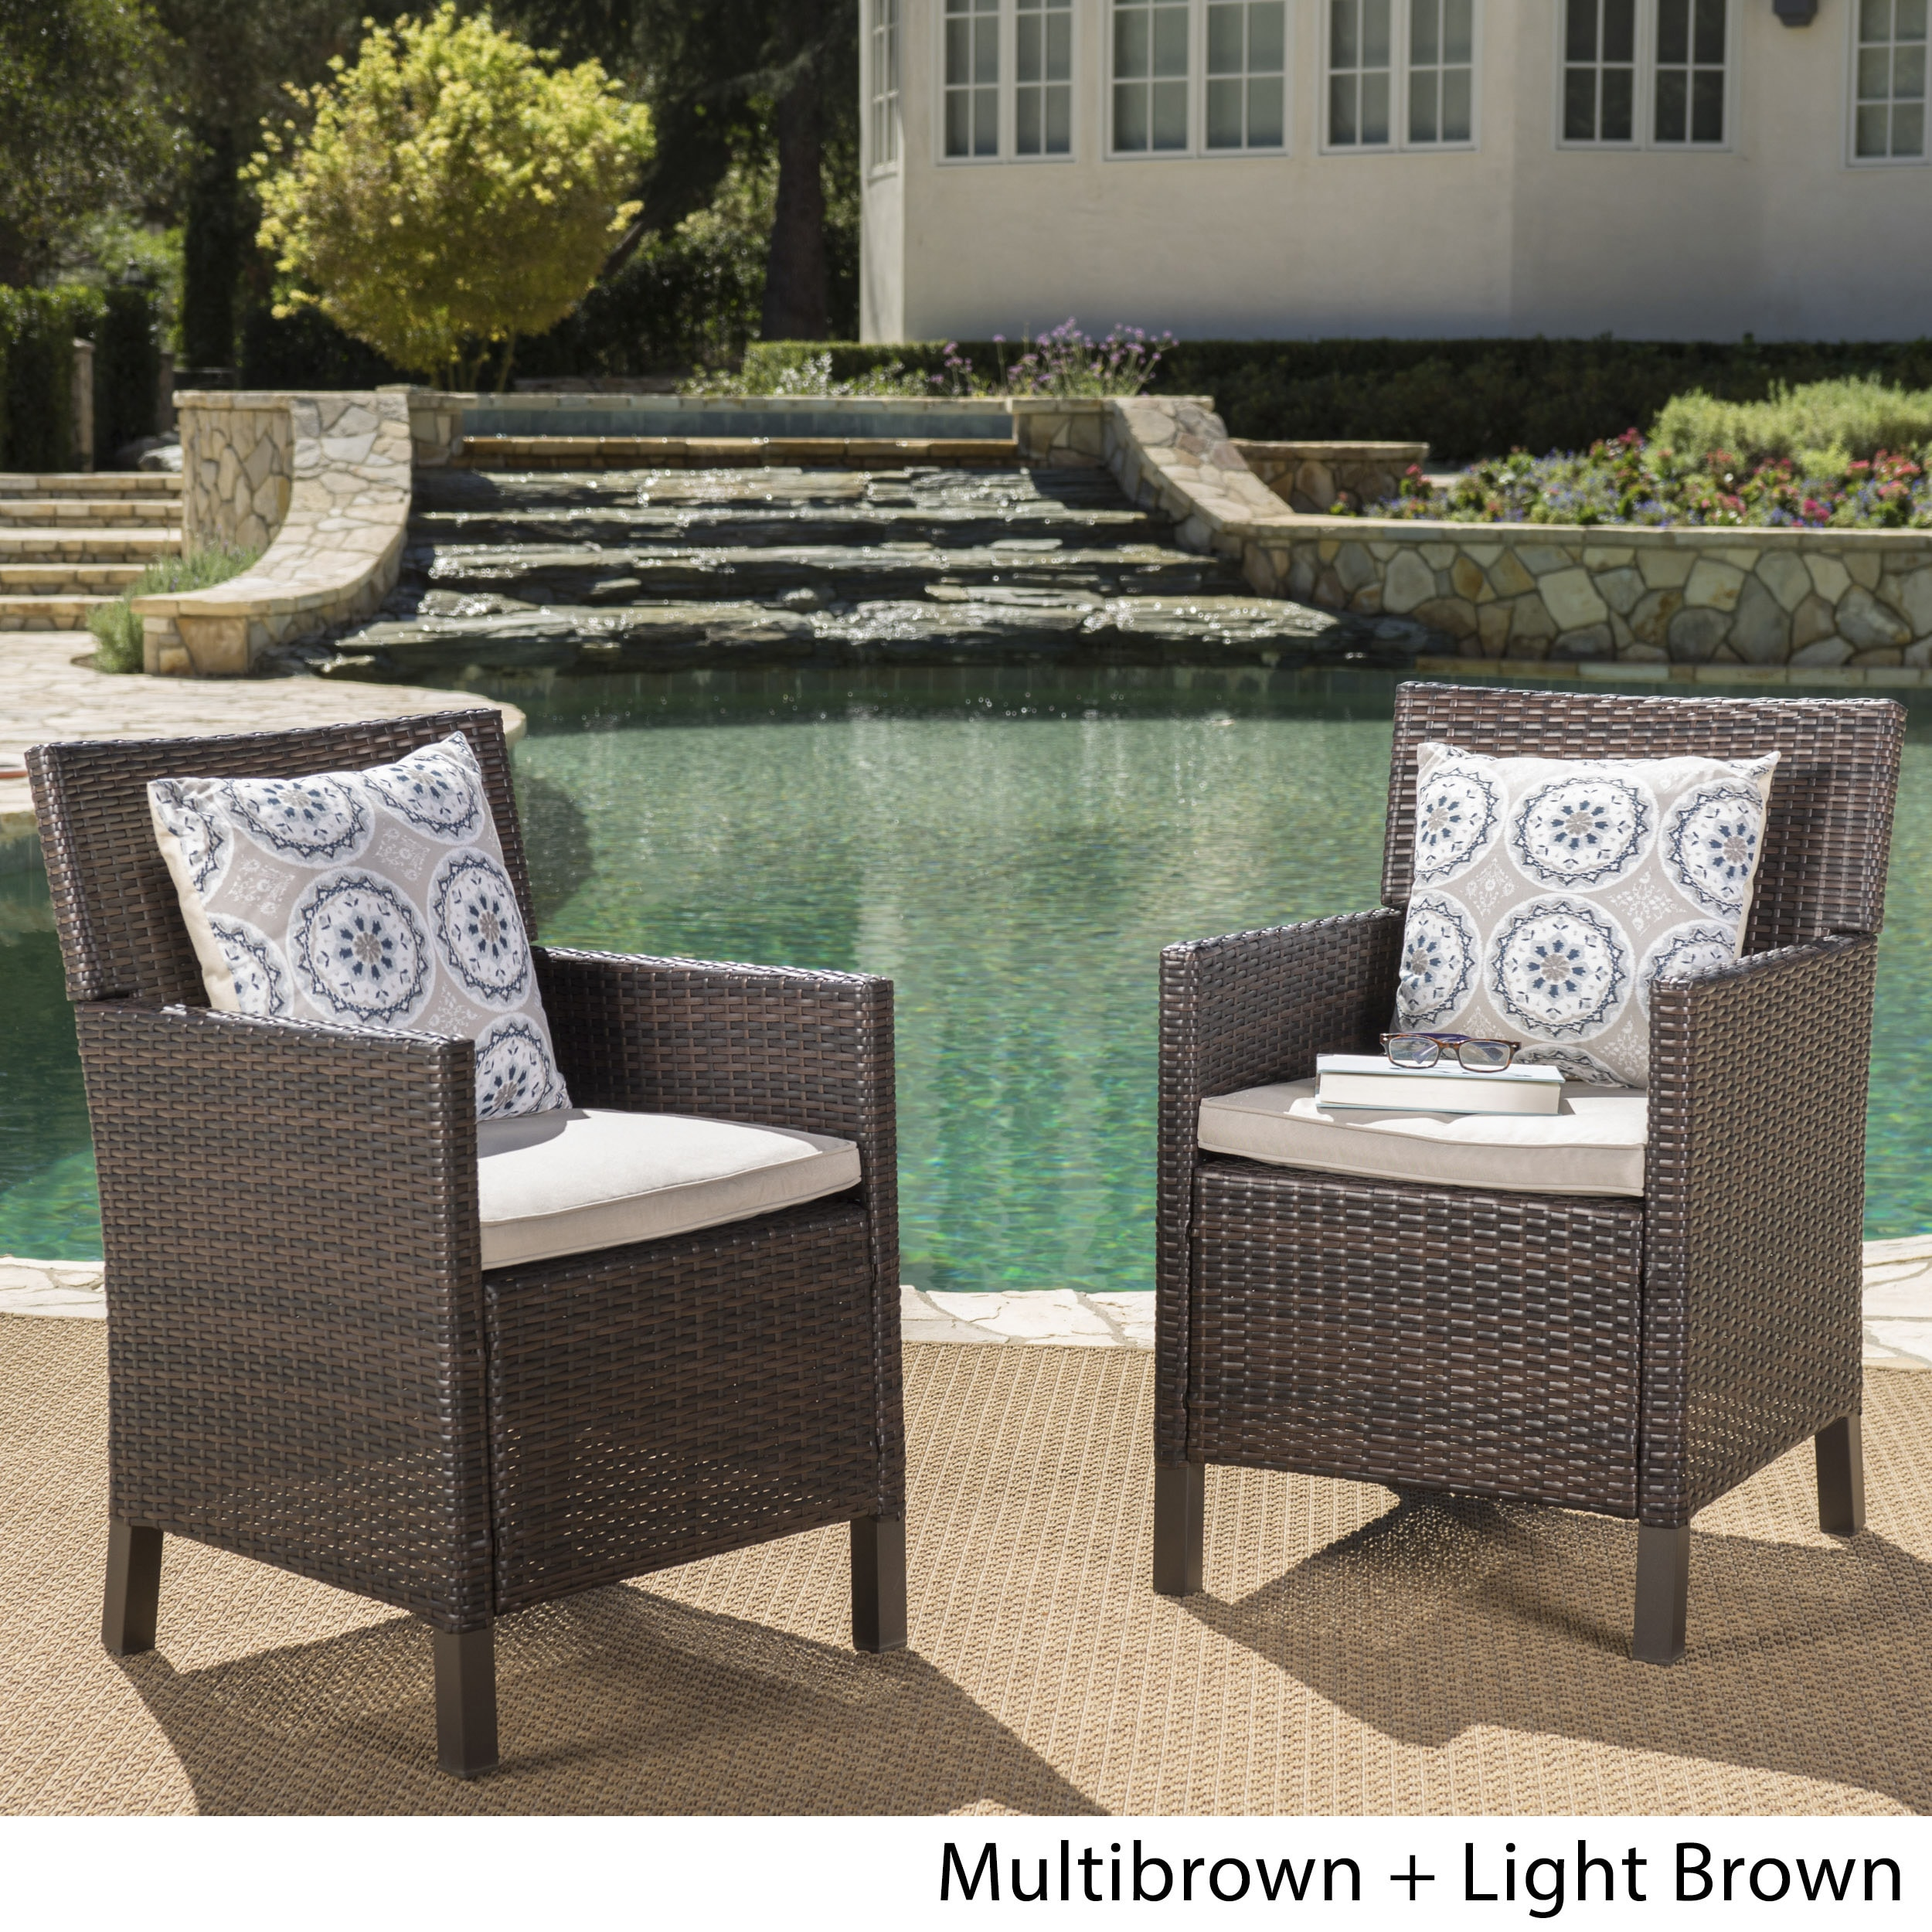 Cypress Outdoor Wicker Dining Chairs With Cushions Set Of 2 By Christopher Knight Home On Free Shipping Today 18088204